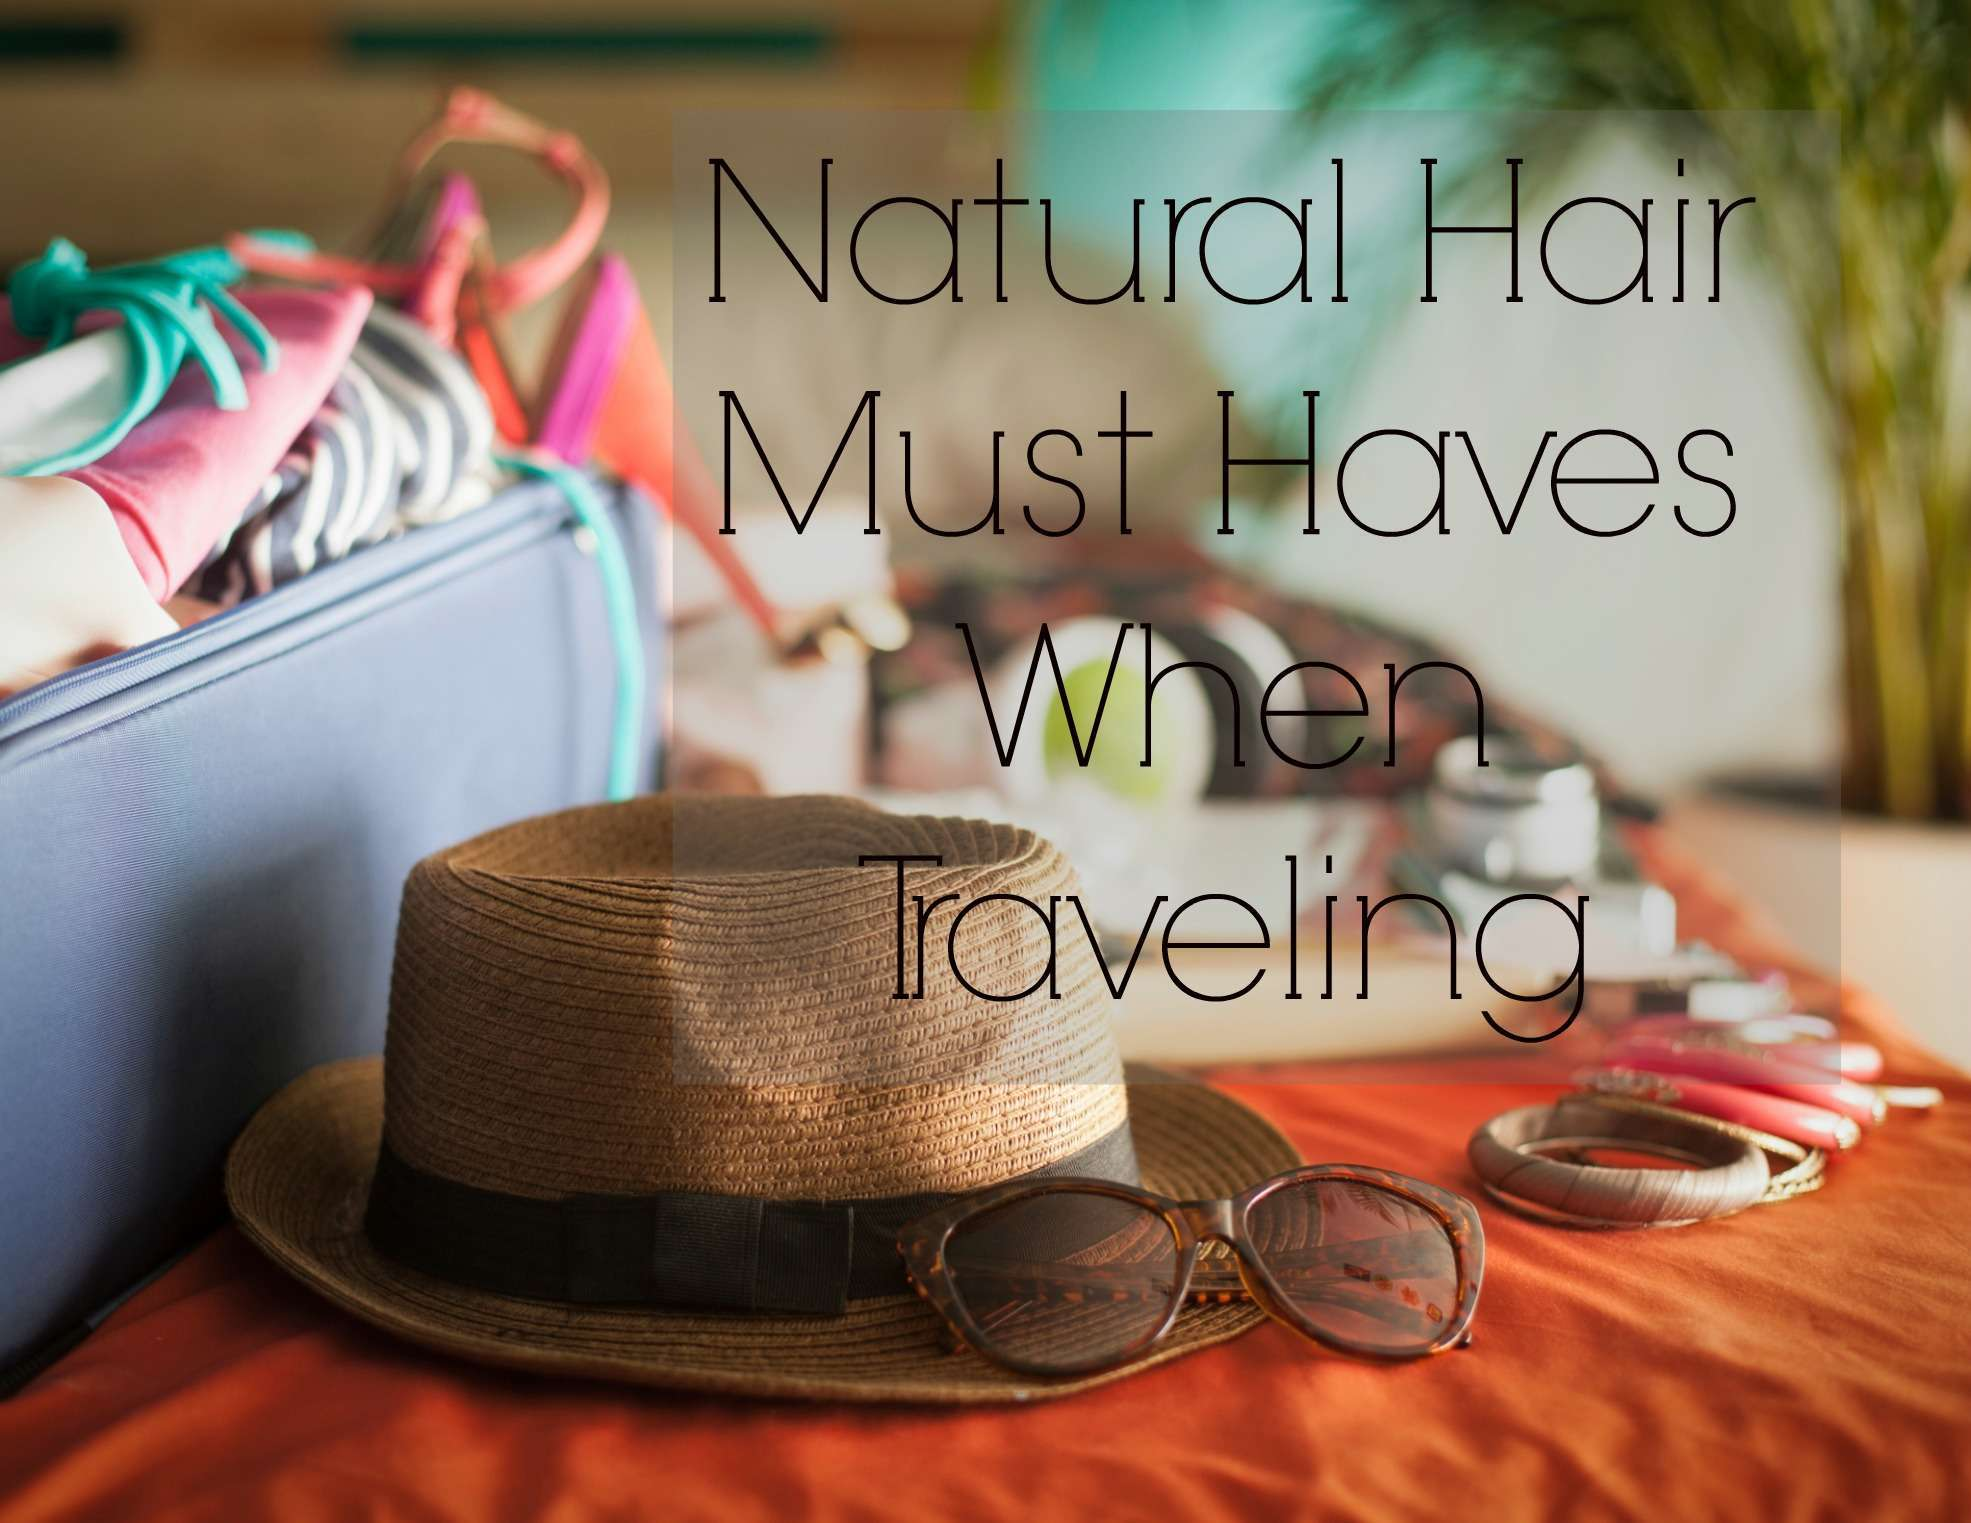 What you need when traveling with natural hair